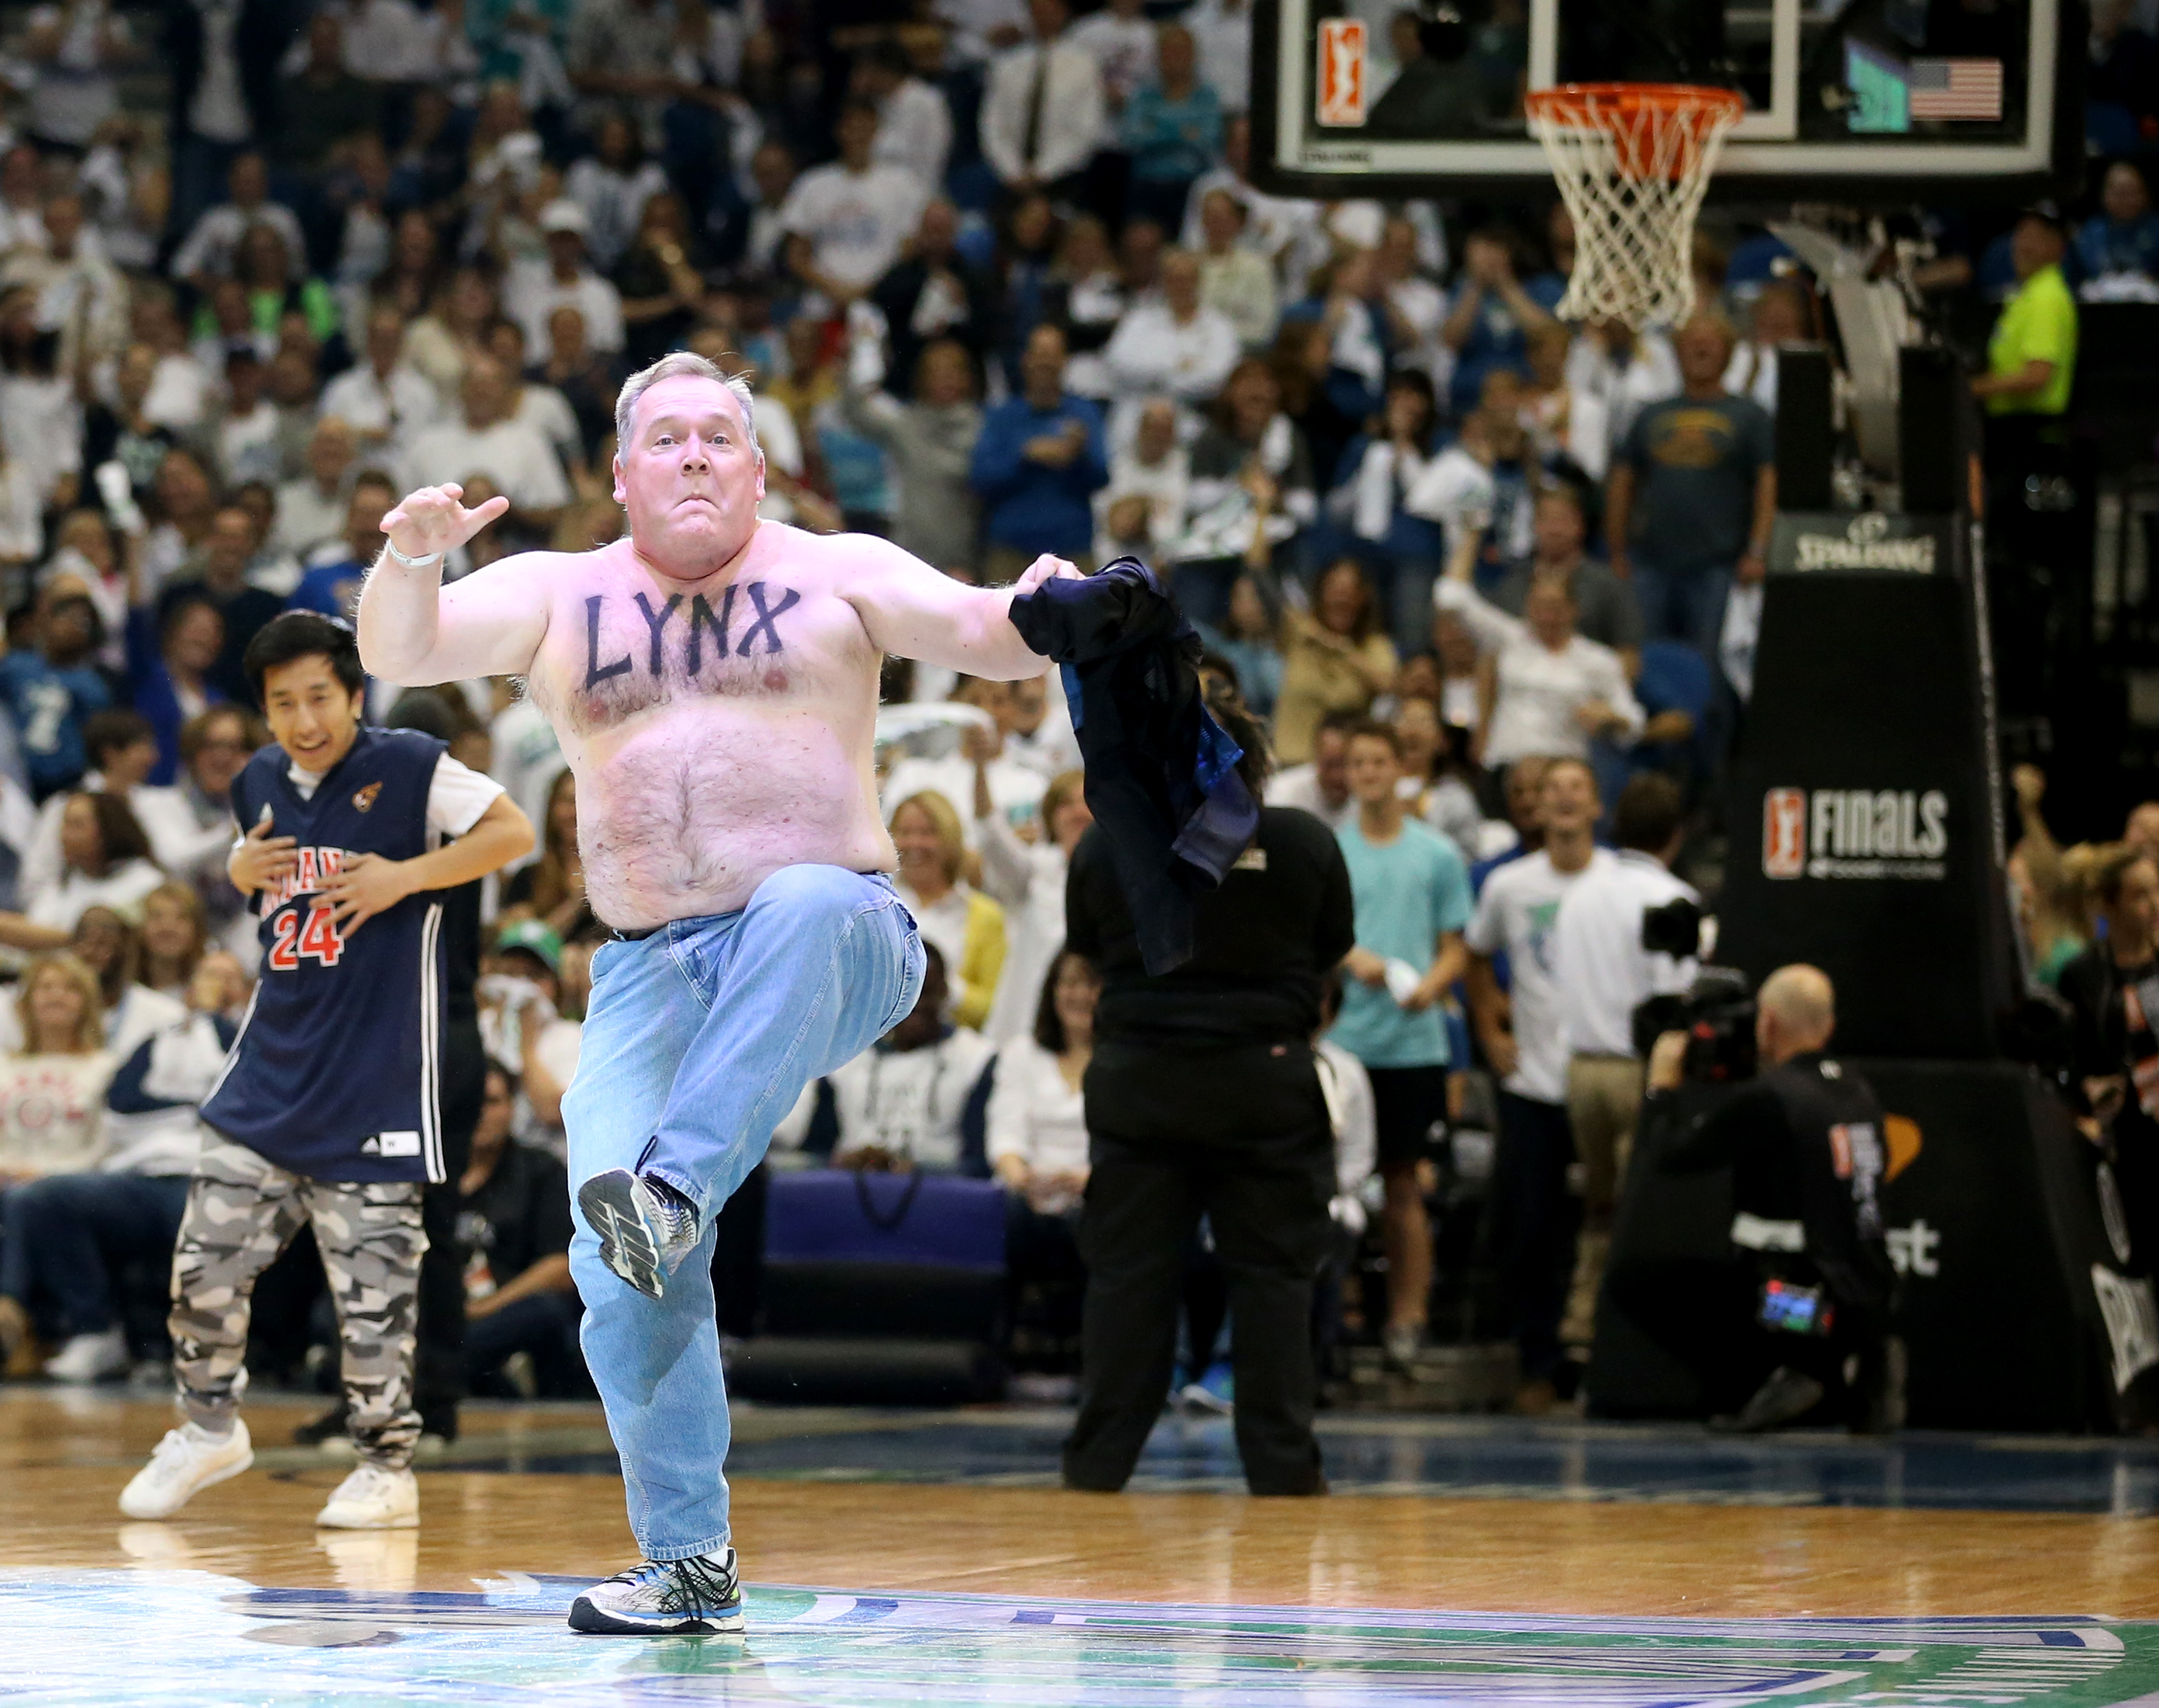 Jiggles danced it up for Prowl during a time out during the first half.   ] (KYNDELL HARKNESS/STAR TRIBUNE) kyndell.harkness@startribune.com  Game 5 of the WNBA finals Lynx vs Indiana at the Target Center in Minneapolis, Min., Wednesday October 14,  2015.